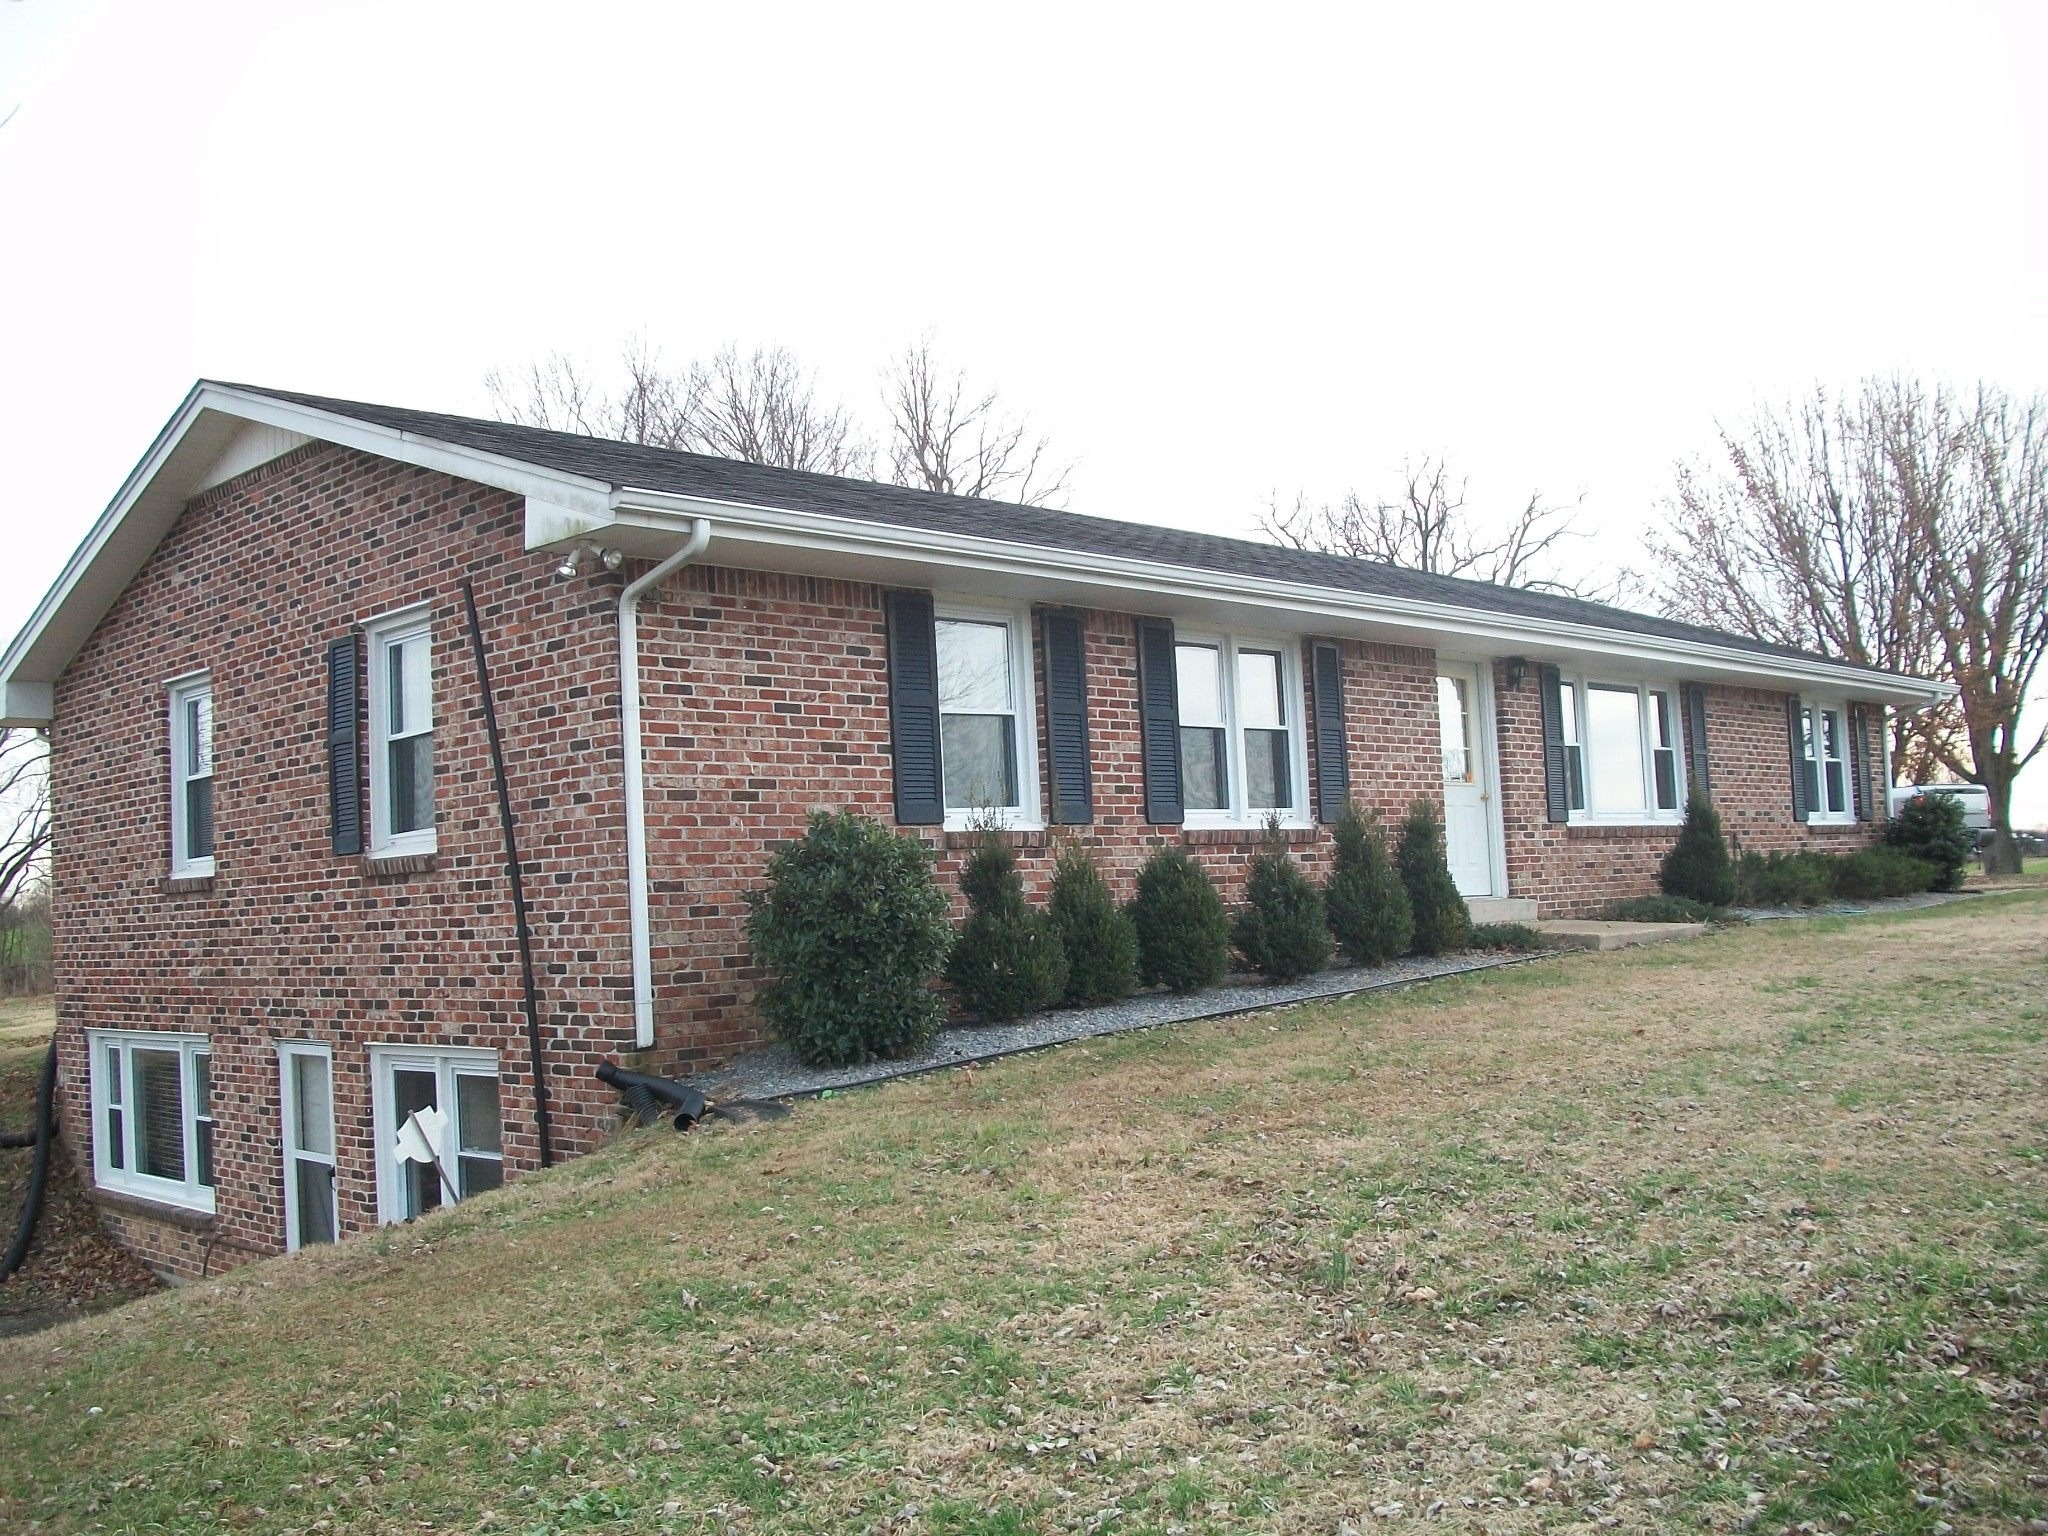 1271 Rosedale Rd, Red Boiling Springs, TN 37150 - Red Boiling Springs, TN real estate listing